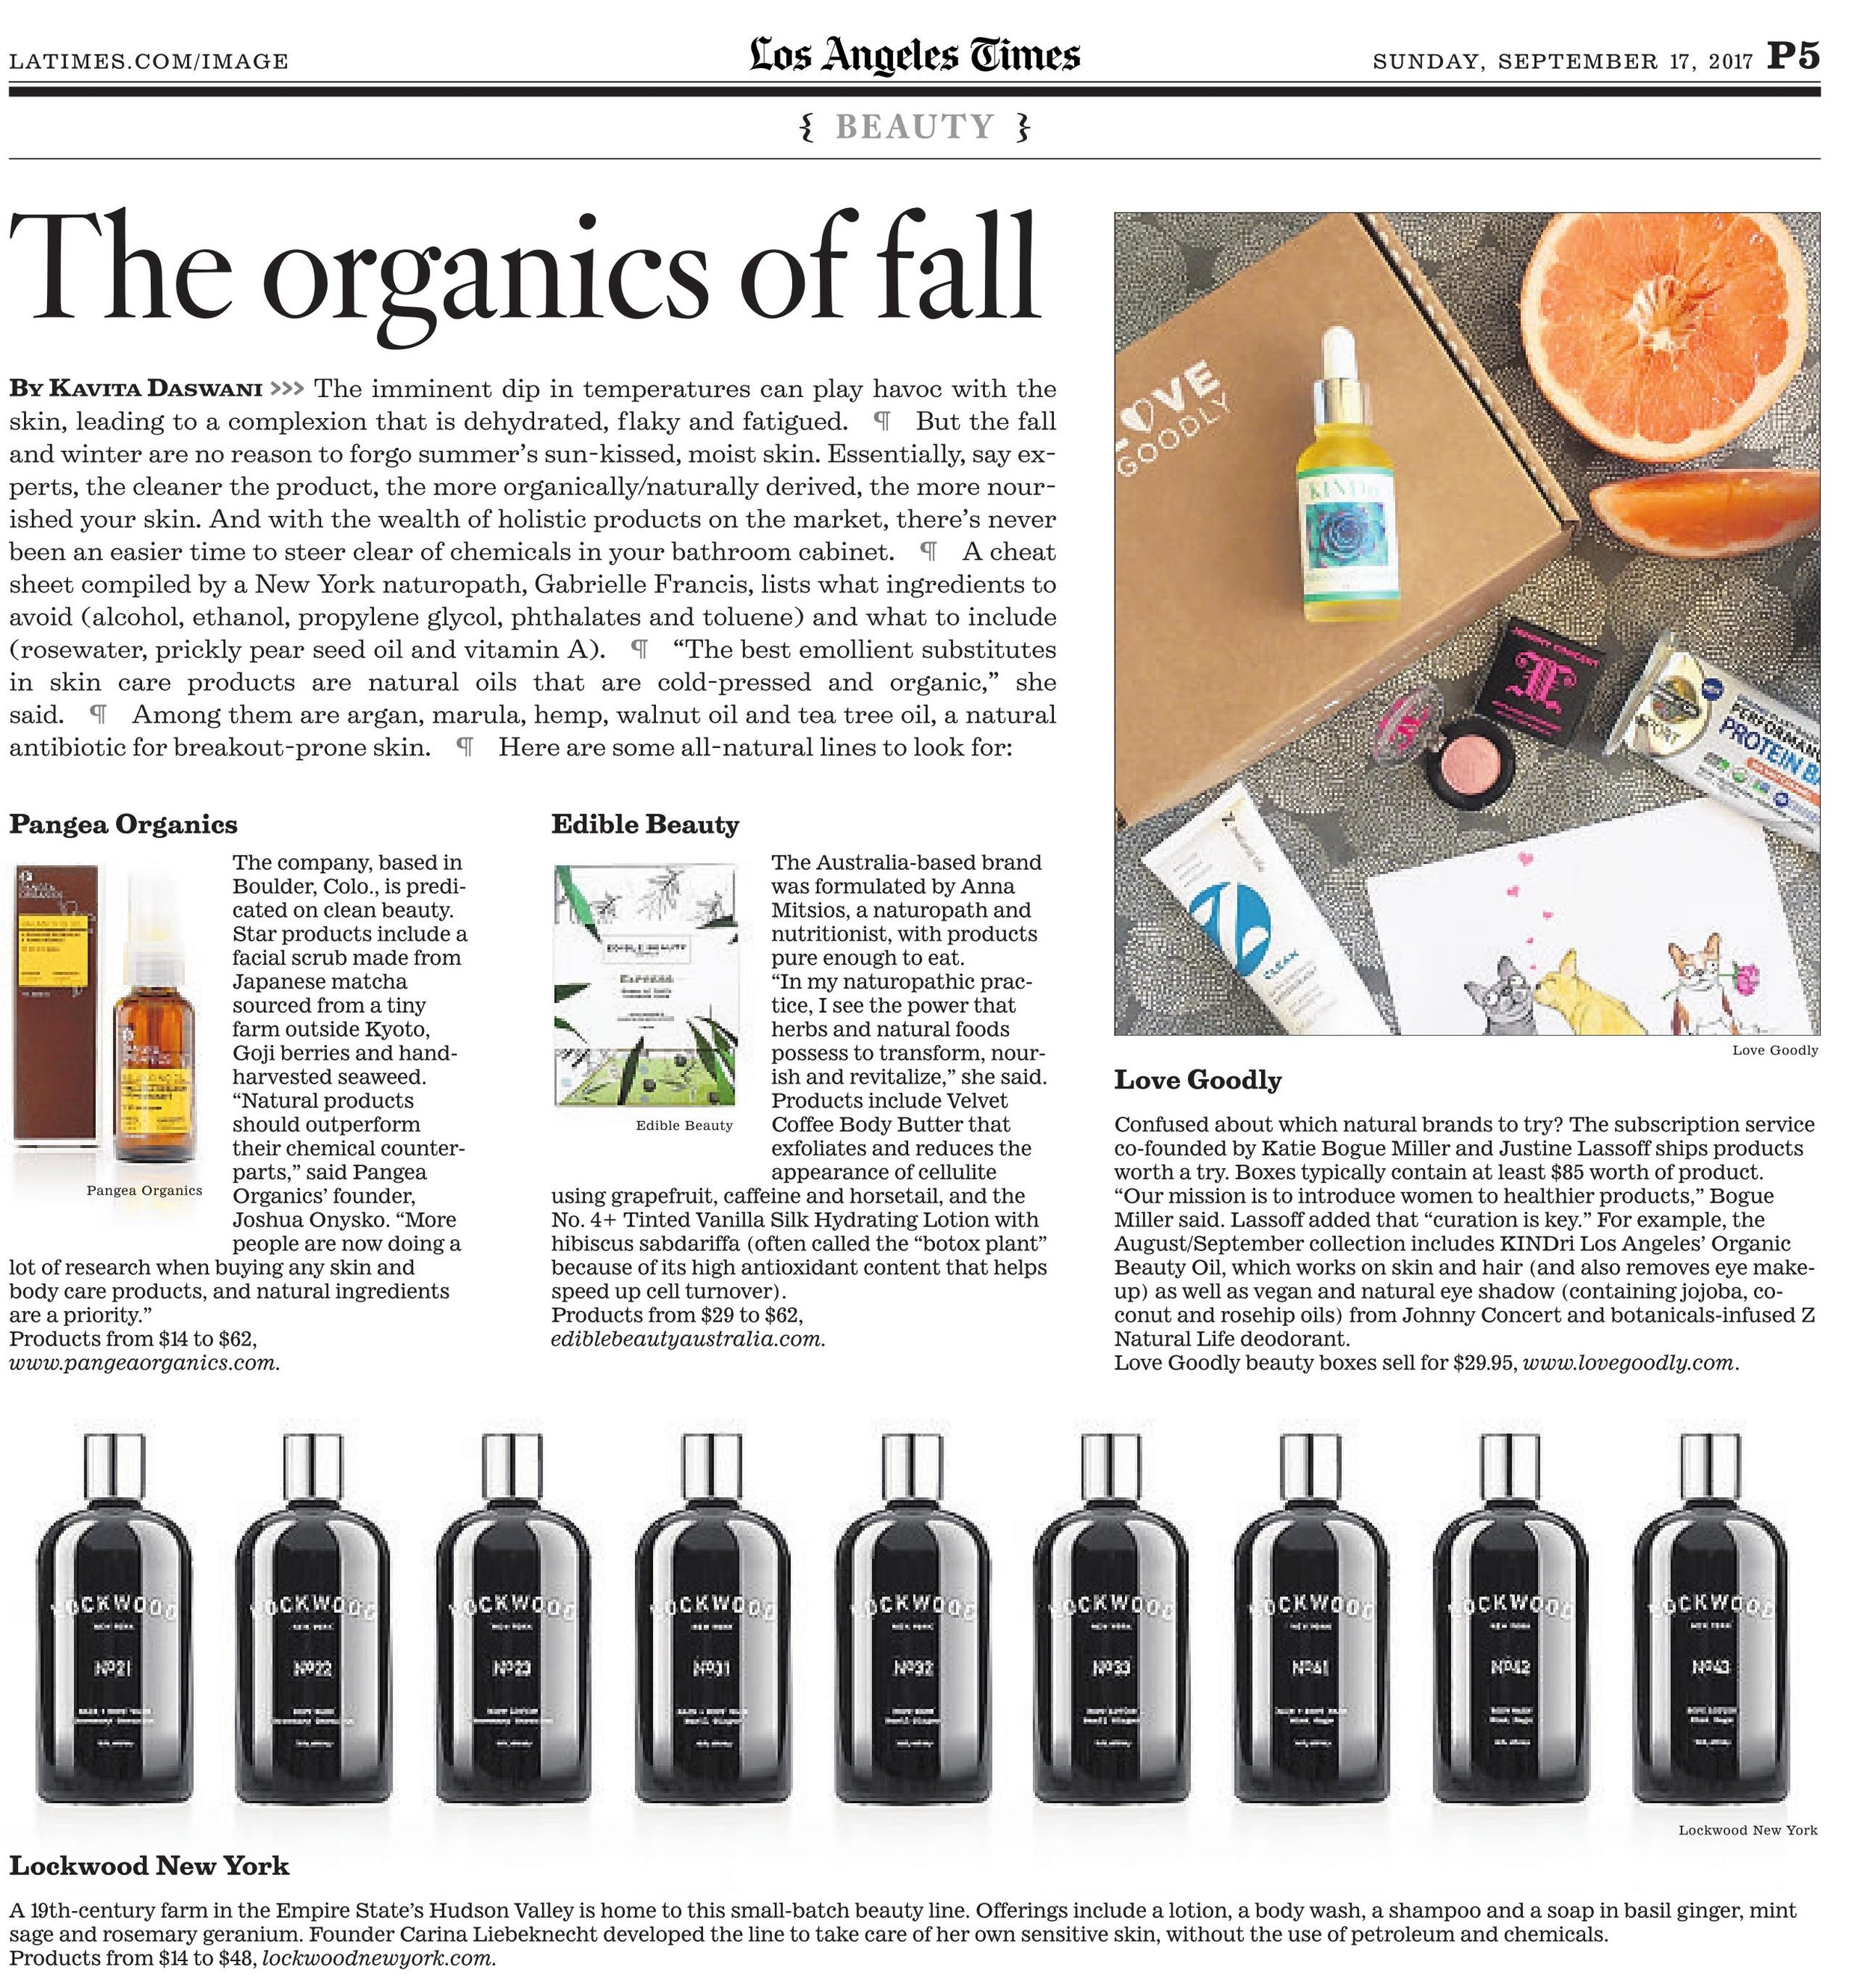 LA Times: Four All Natural Brands That Nourish Your Skin In The New Season